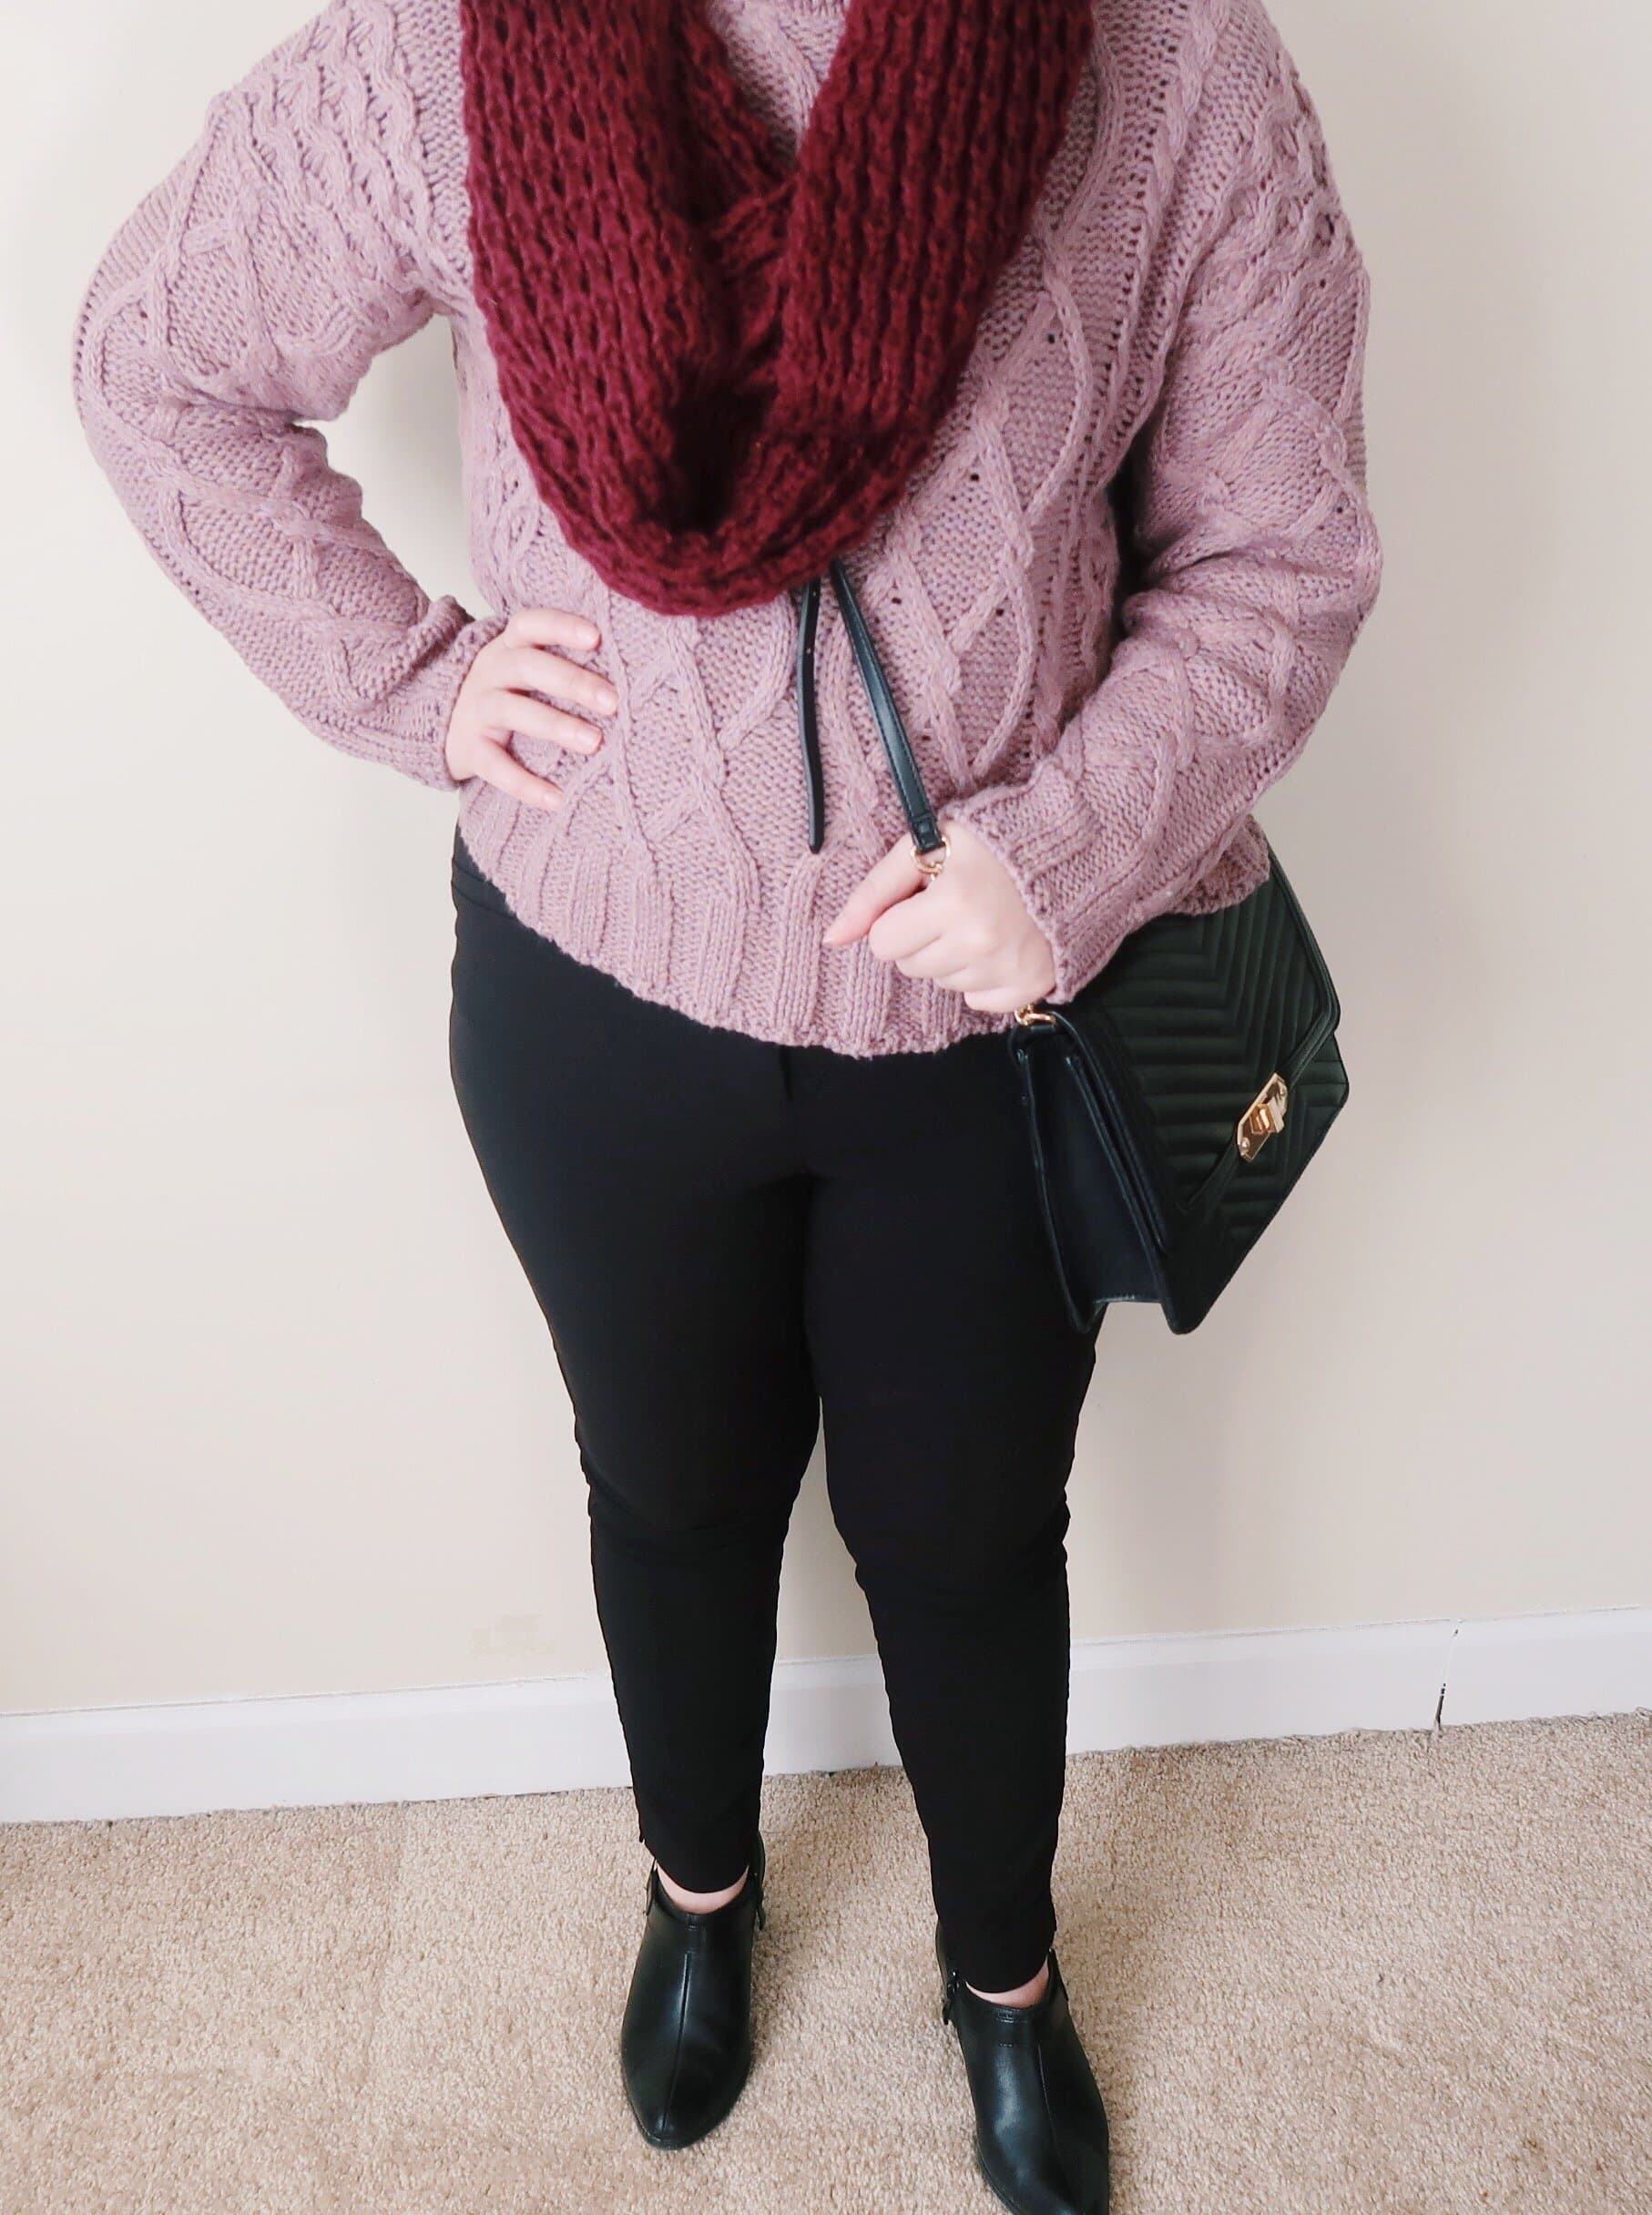 Knit pullover sweater and jeans